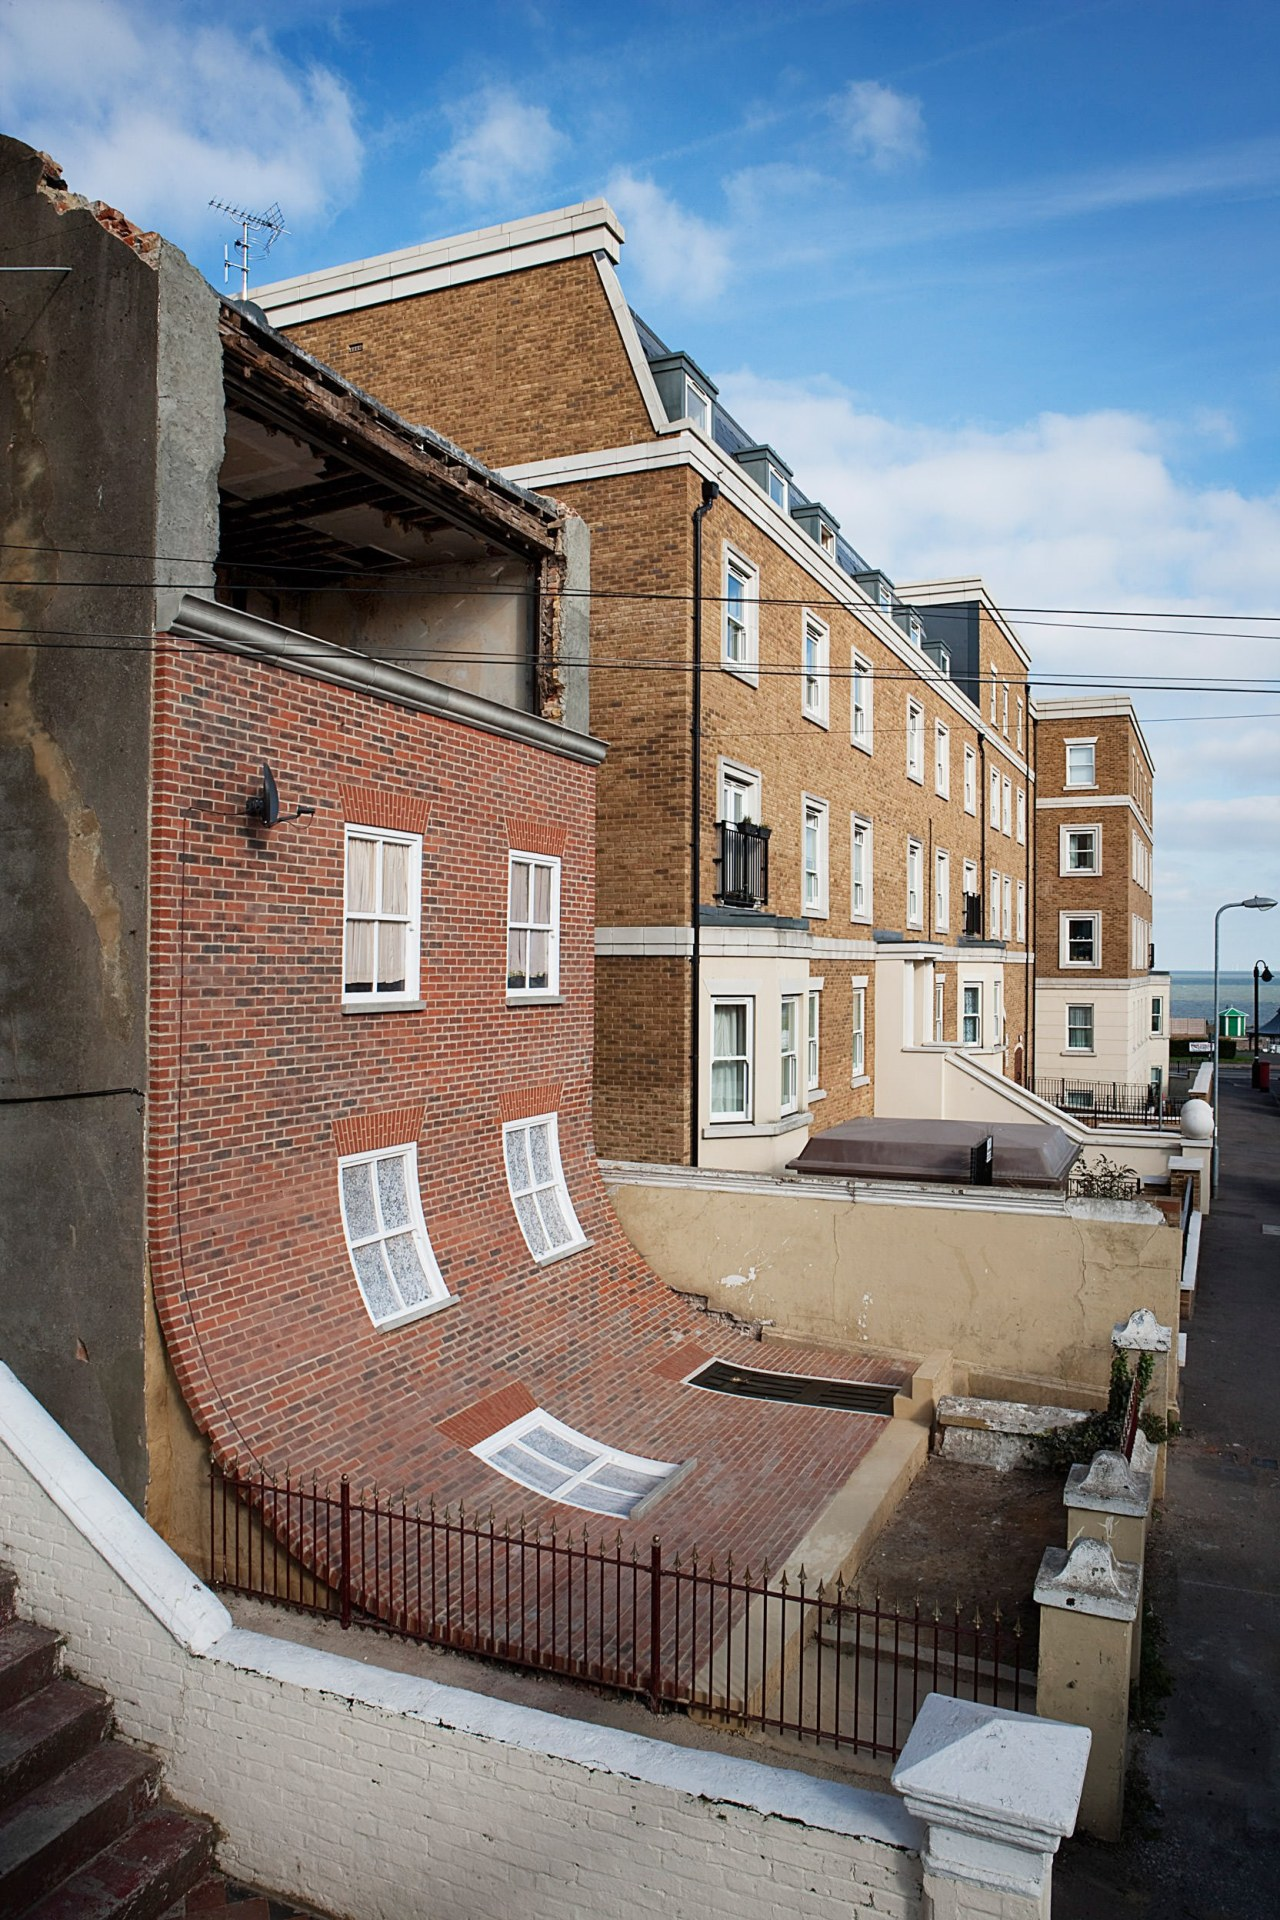 Alex Chinneck – From the knees of my apartment, architecture, blue, brick, brickwork, building, facade, home, house, neighbourhood, property, real estate, residential area, roof, street, town, urban area, wall, window, gray